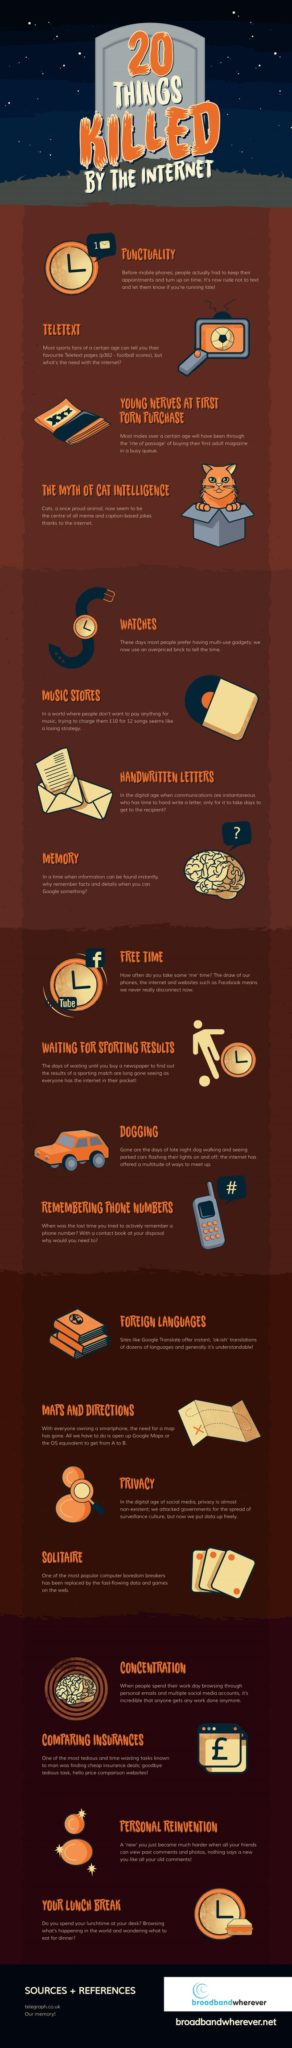 20 Things Killed By The Internet And Technology_techxerl